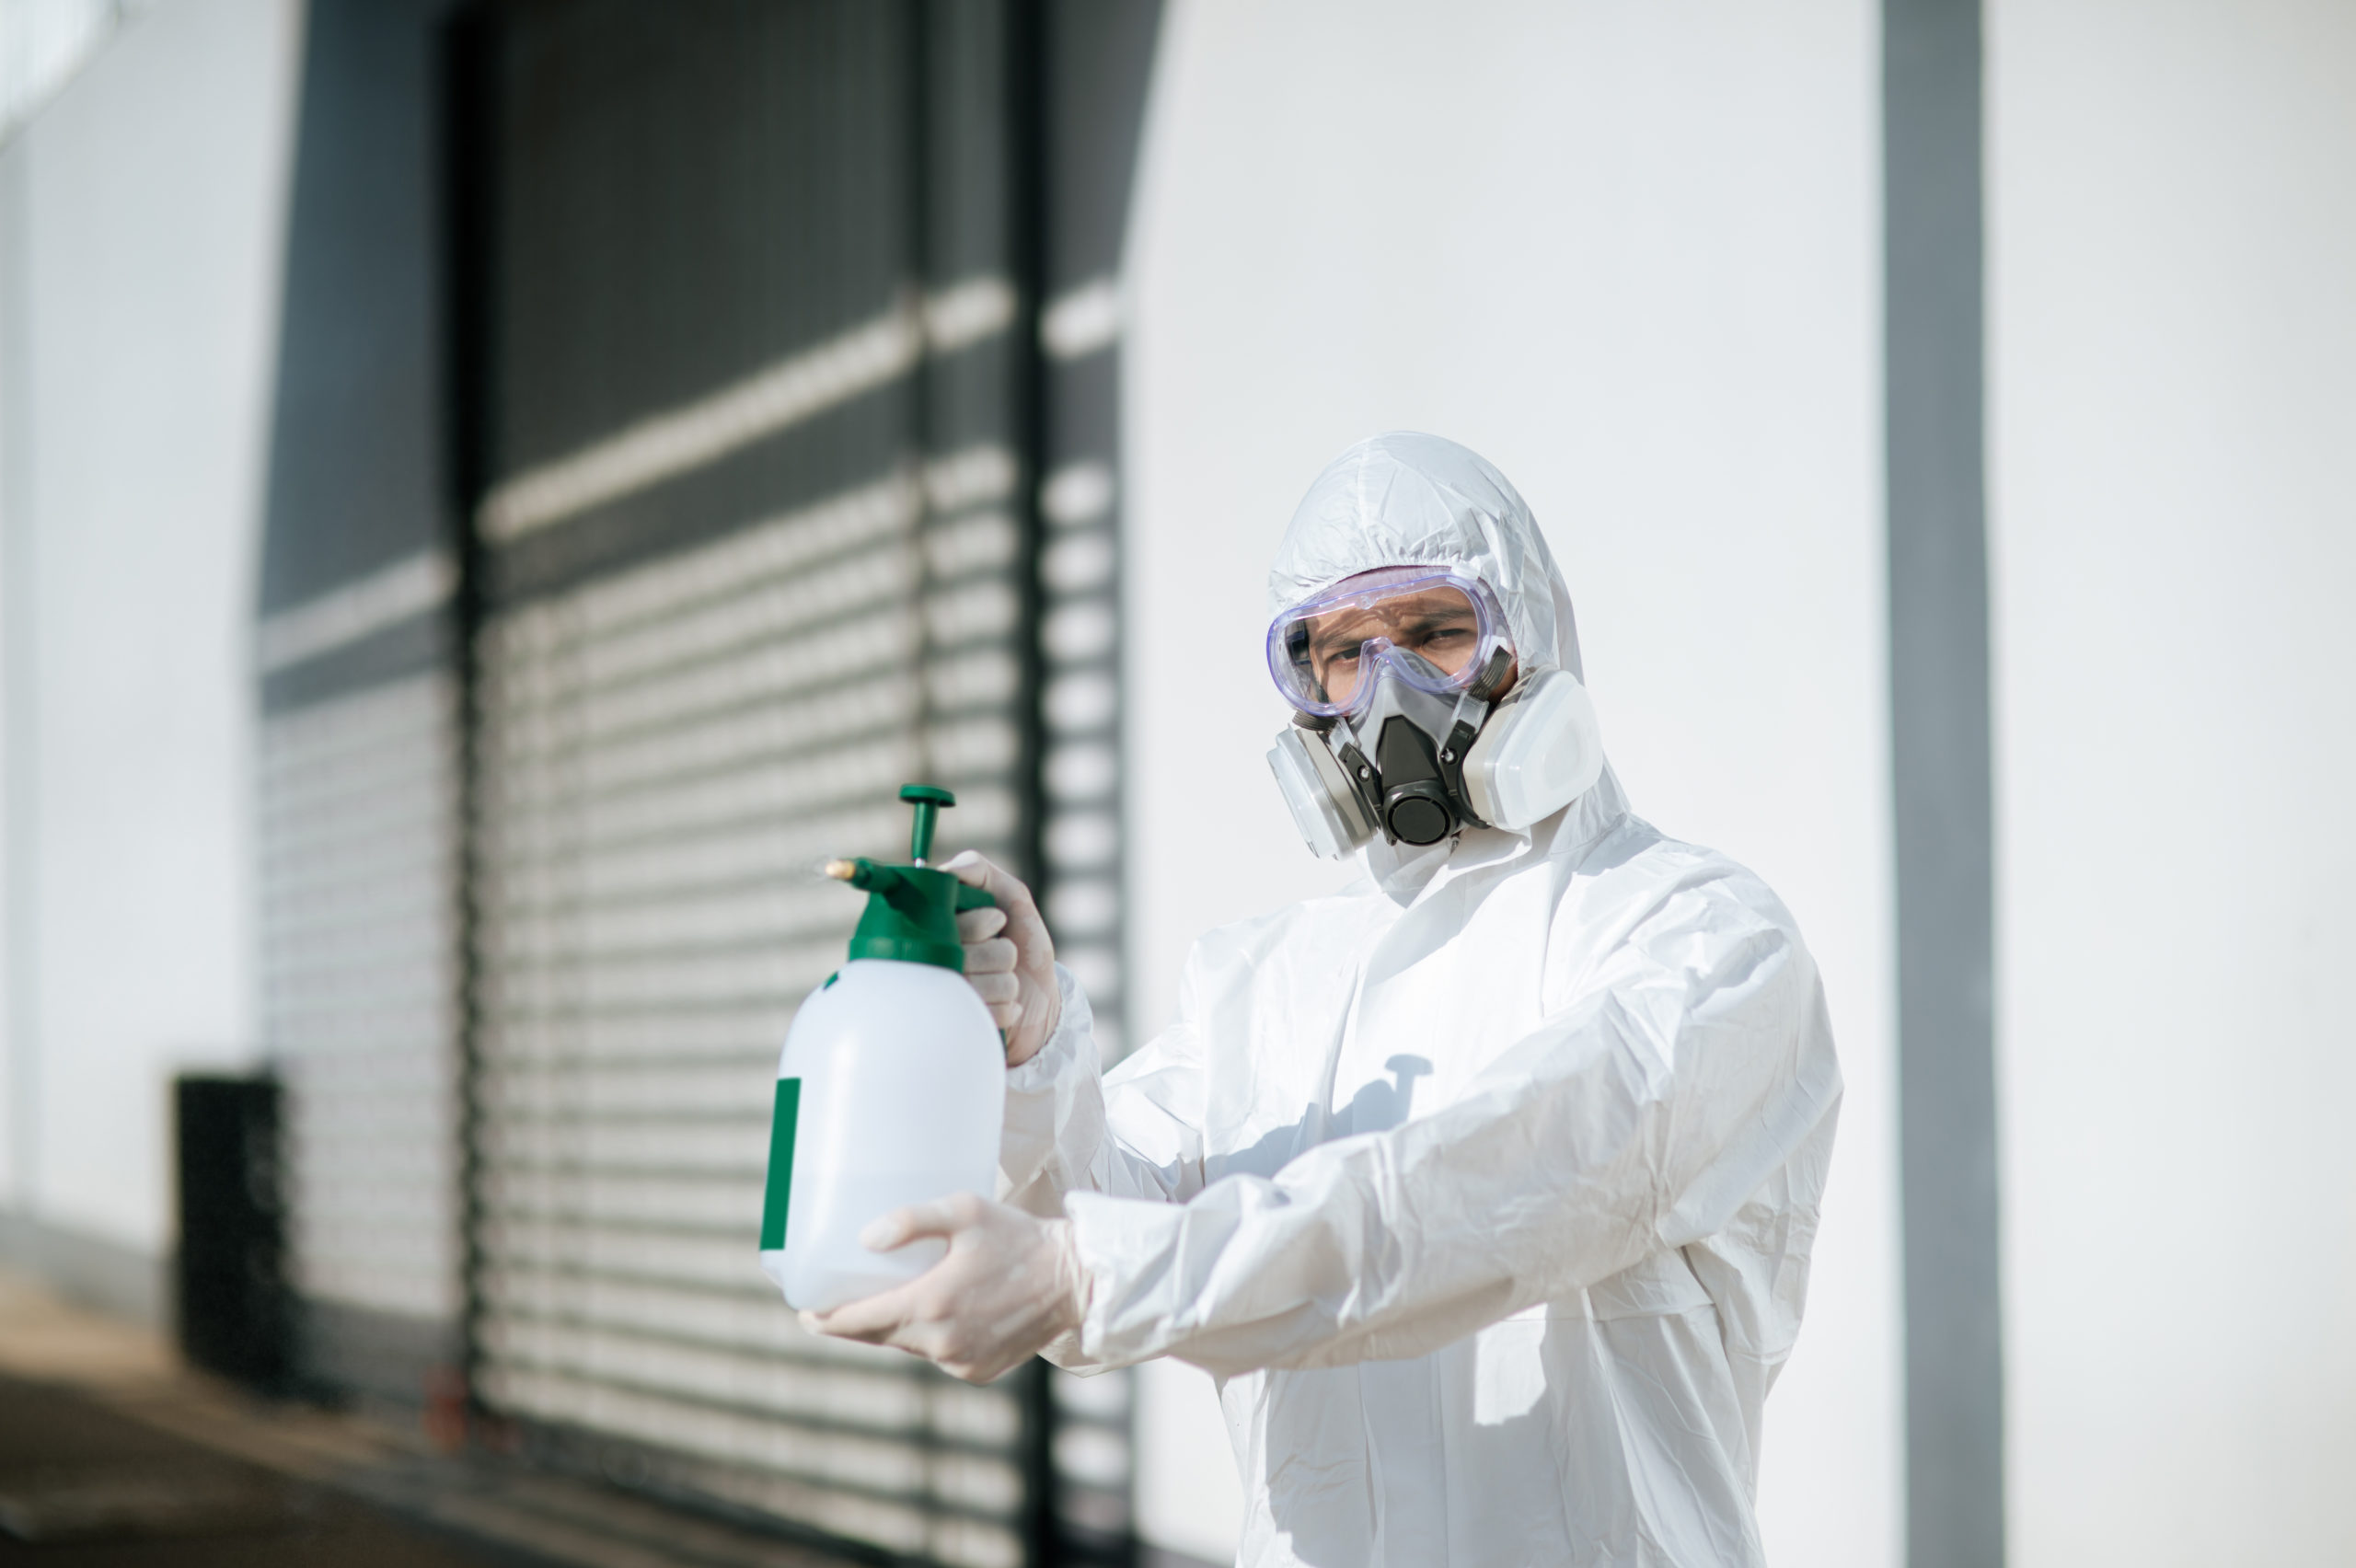 Disinfection specialist in PPE suit performing public decontamin